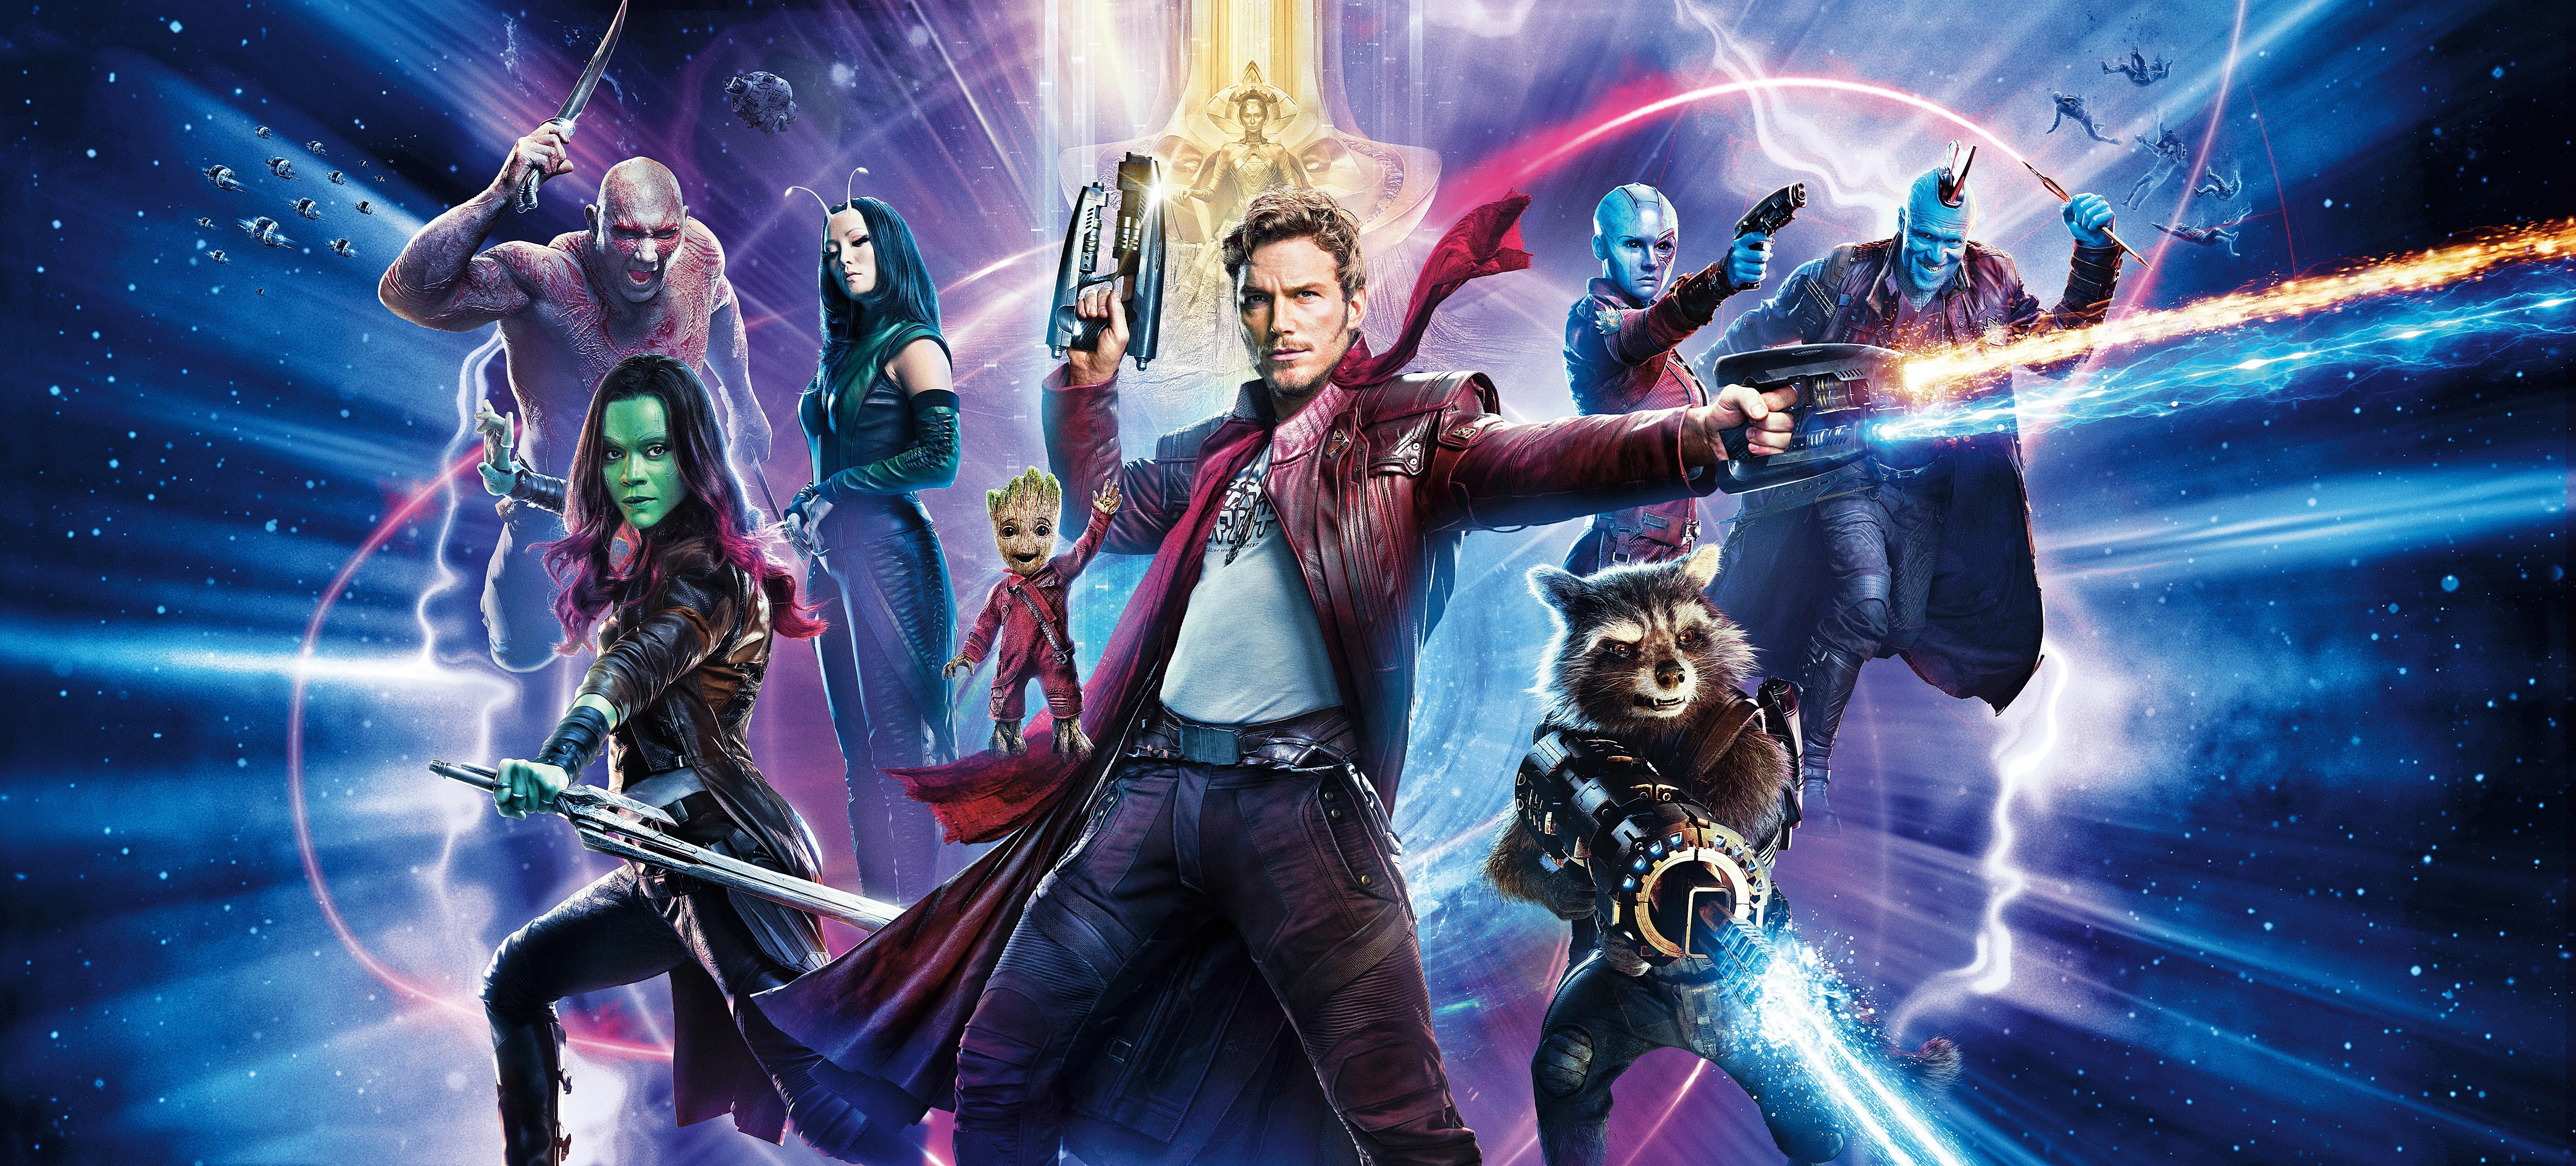 Guardians Of The Galaxy Wallpapers Top Free Guardians Of The Galaxy Backgrounds Wallpaperaccess